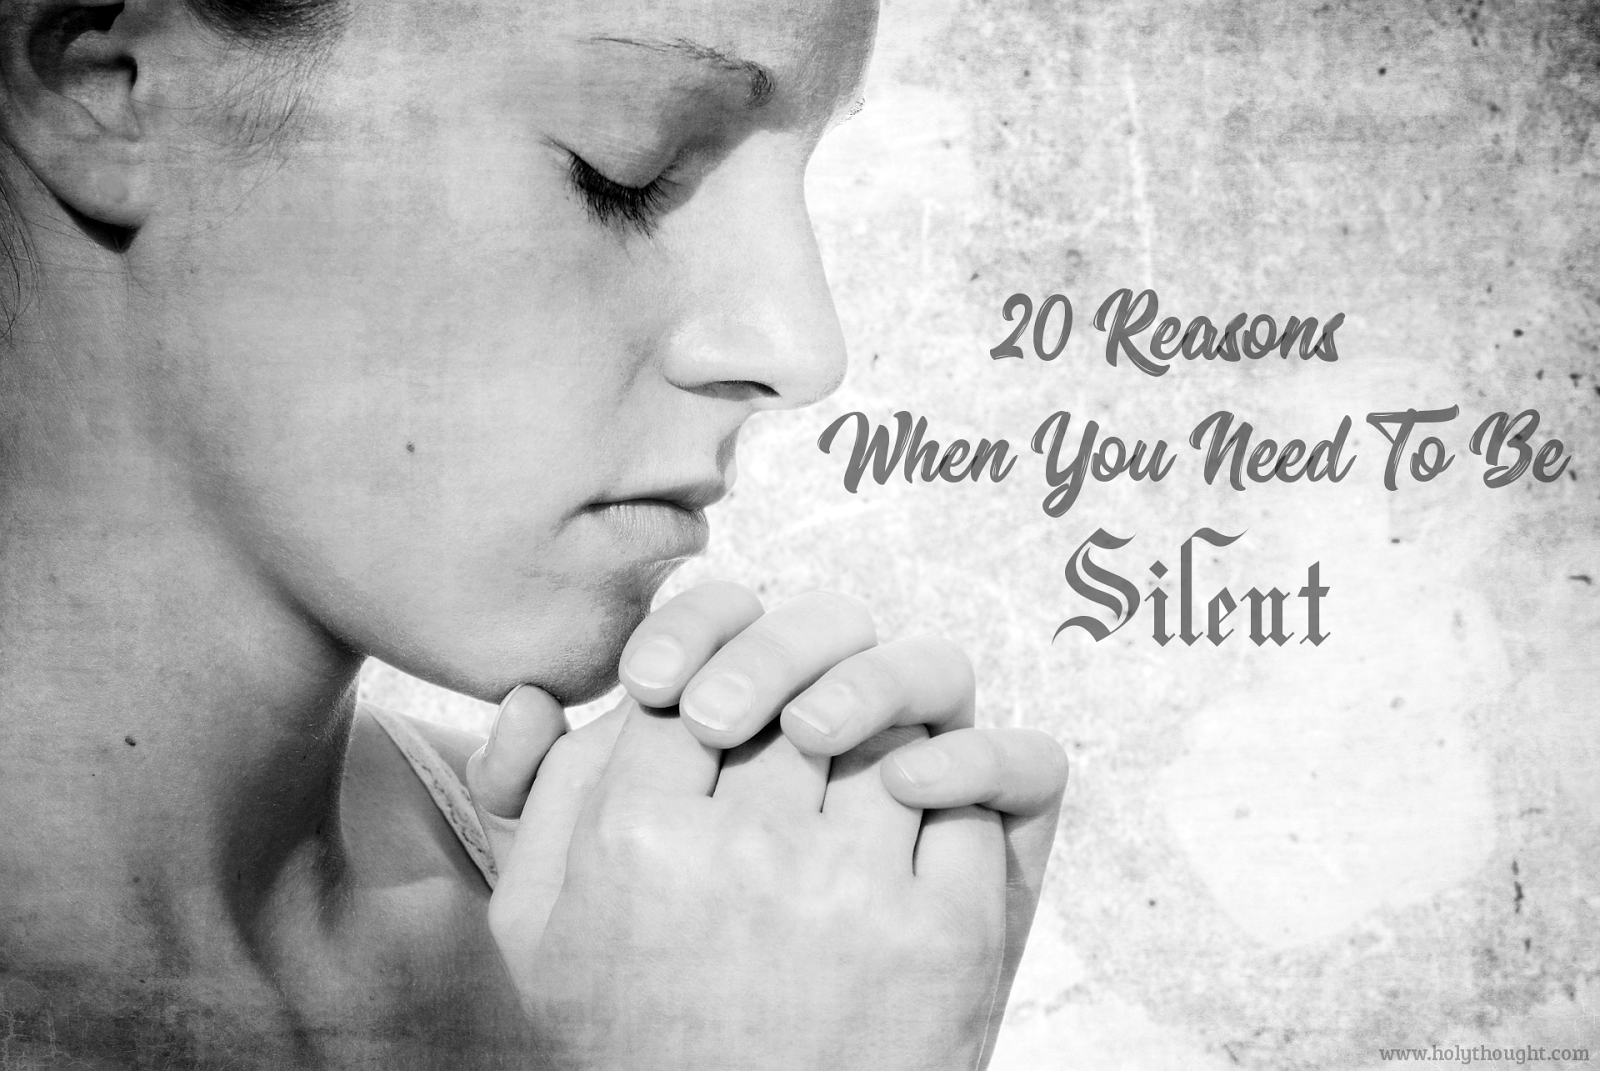 20_Reasons_When_You_Need_To_Be_Silent